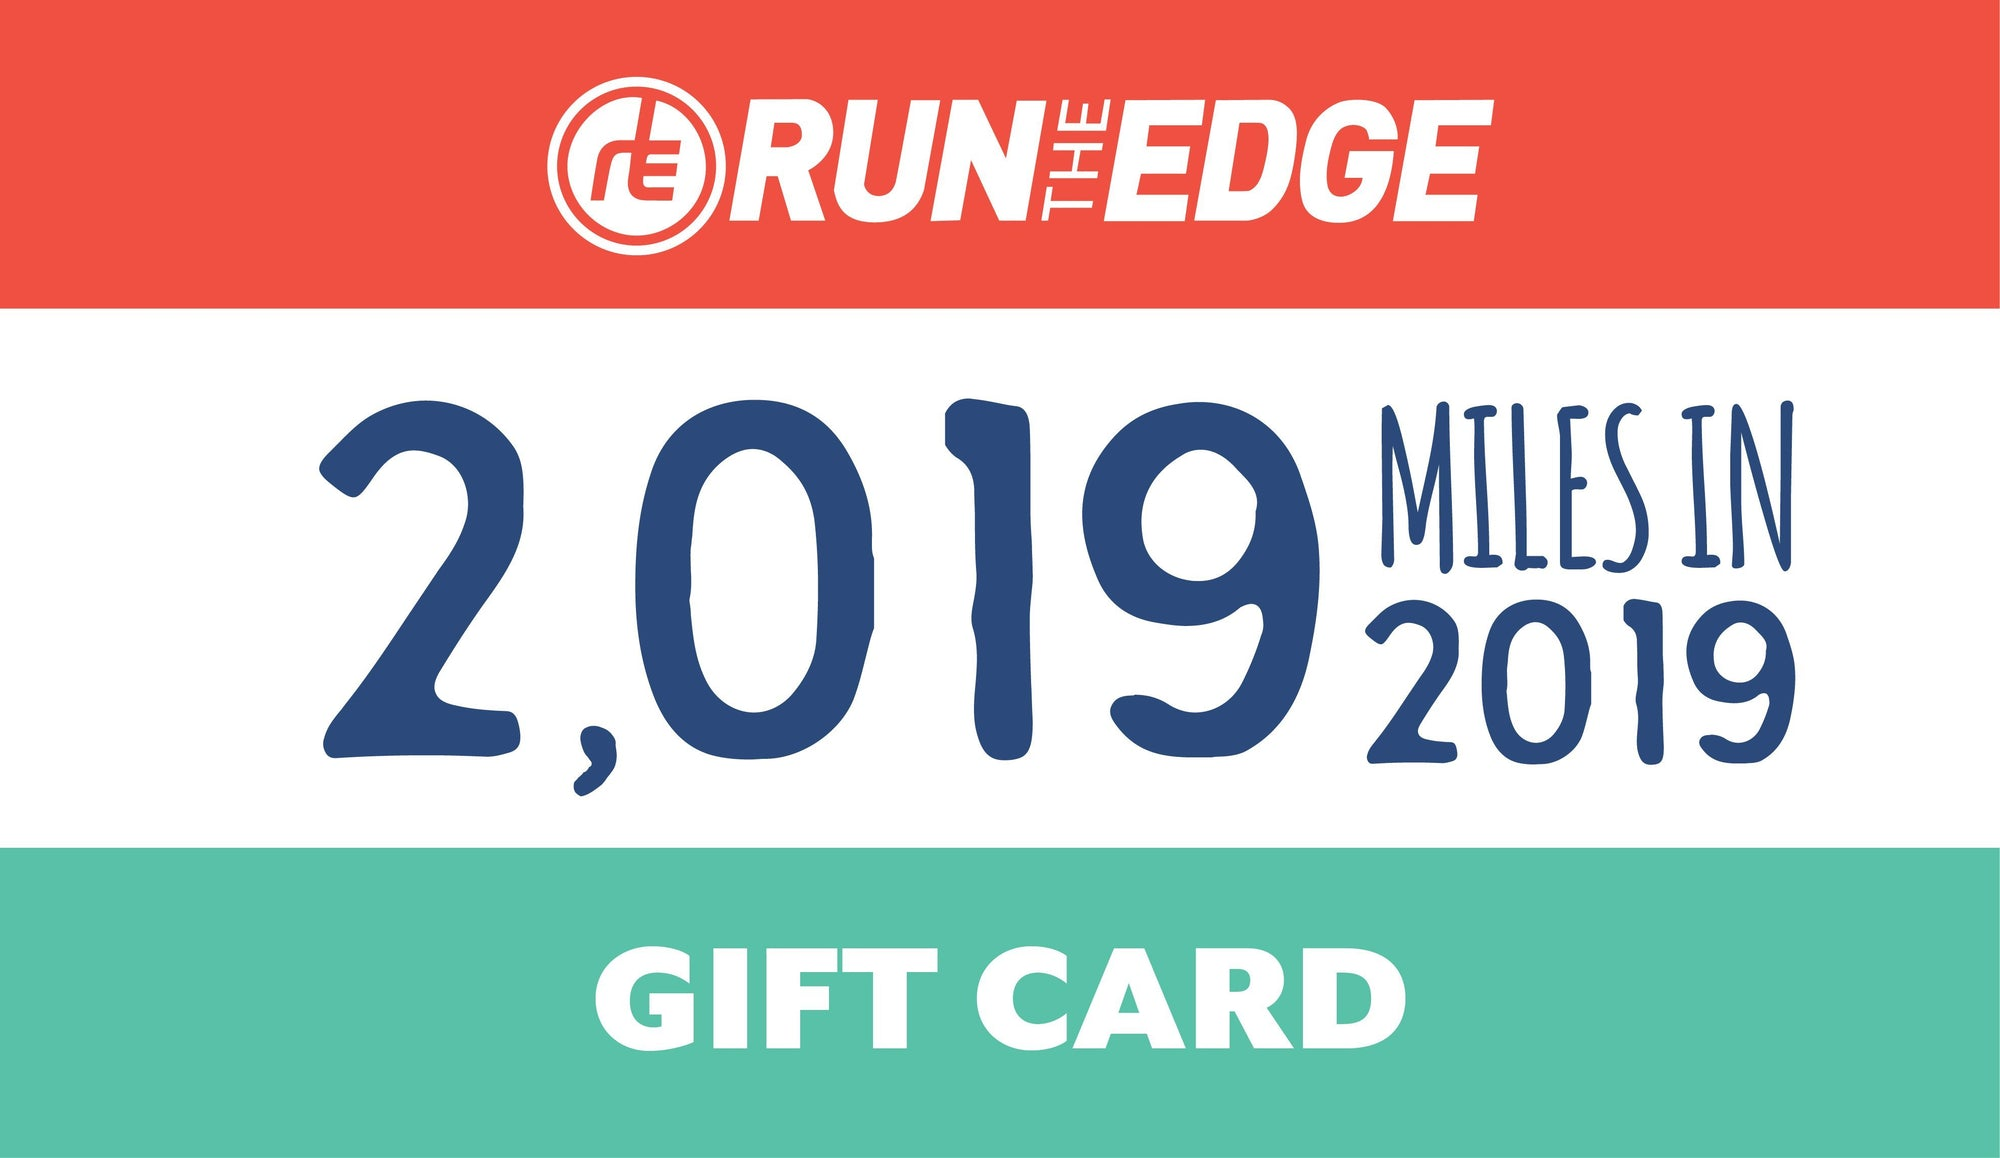 Run The Year 2019 Get It All! Registration Gift Card gift card Run The Edge